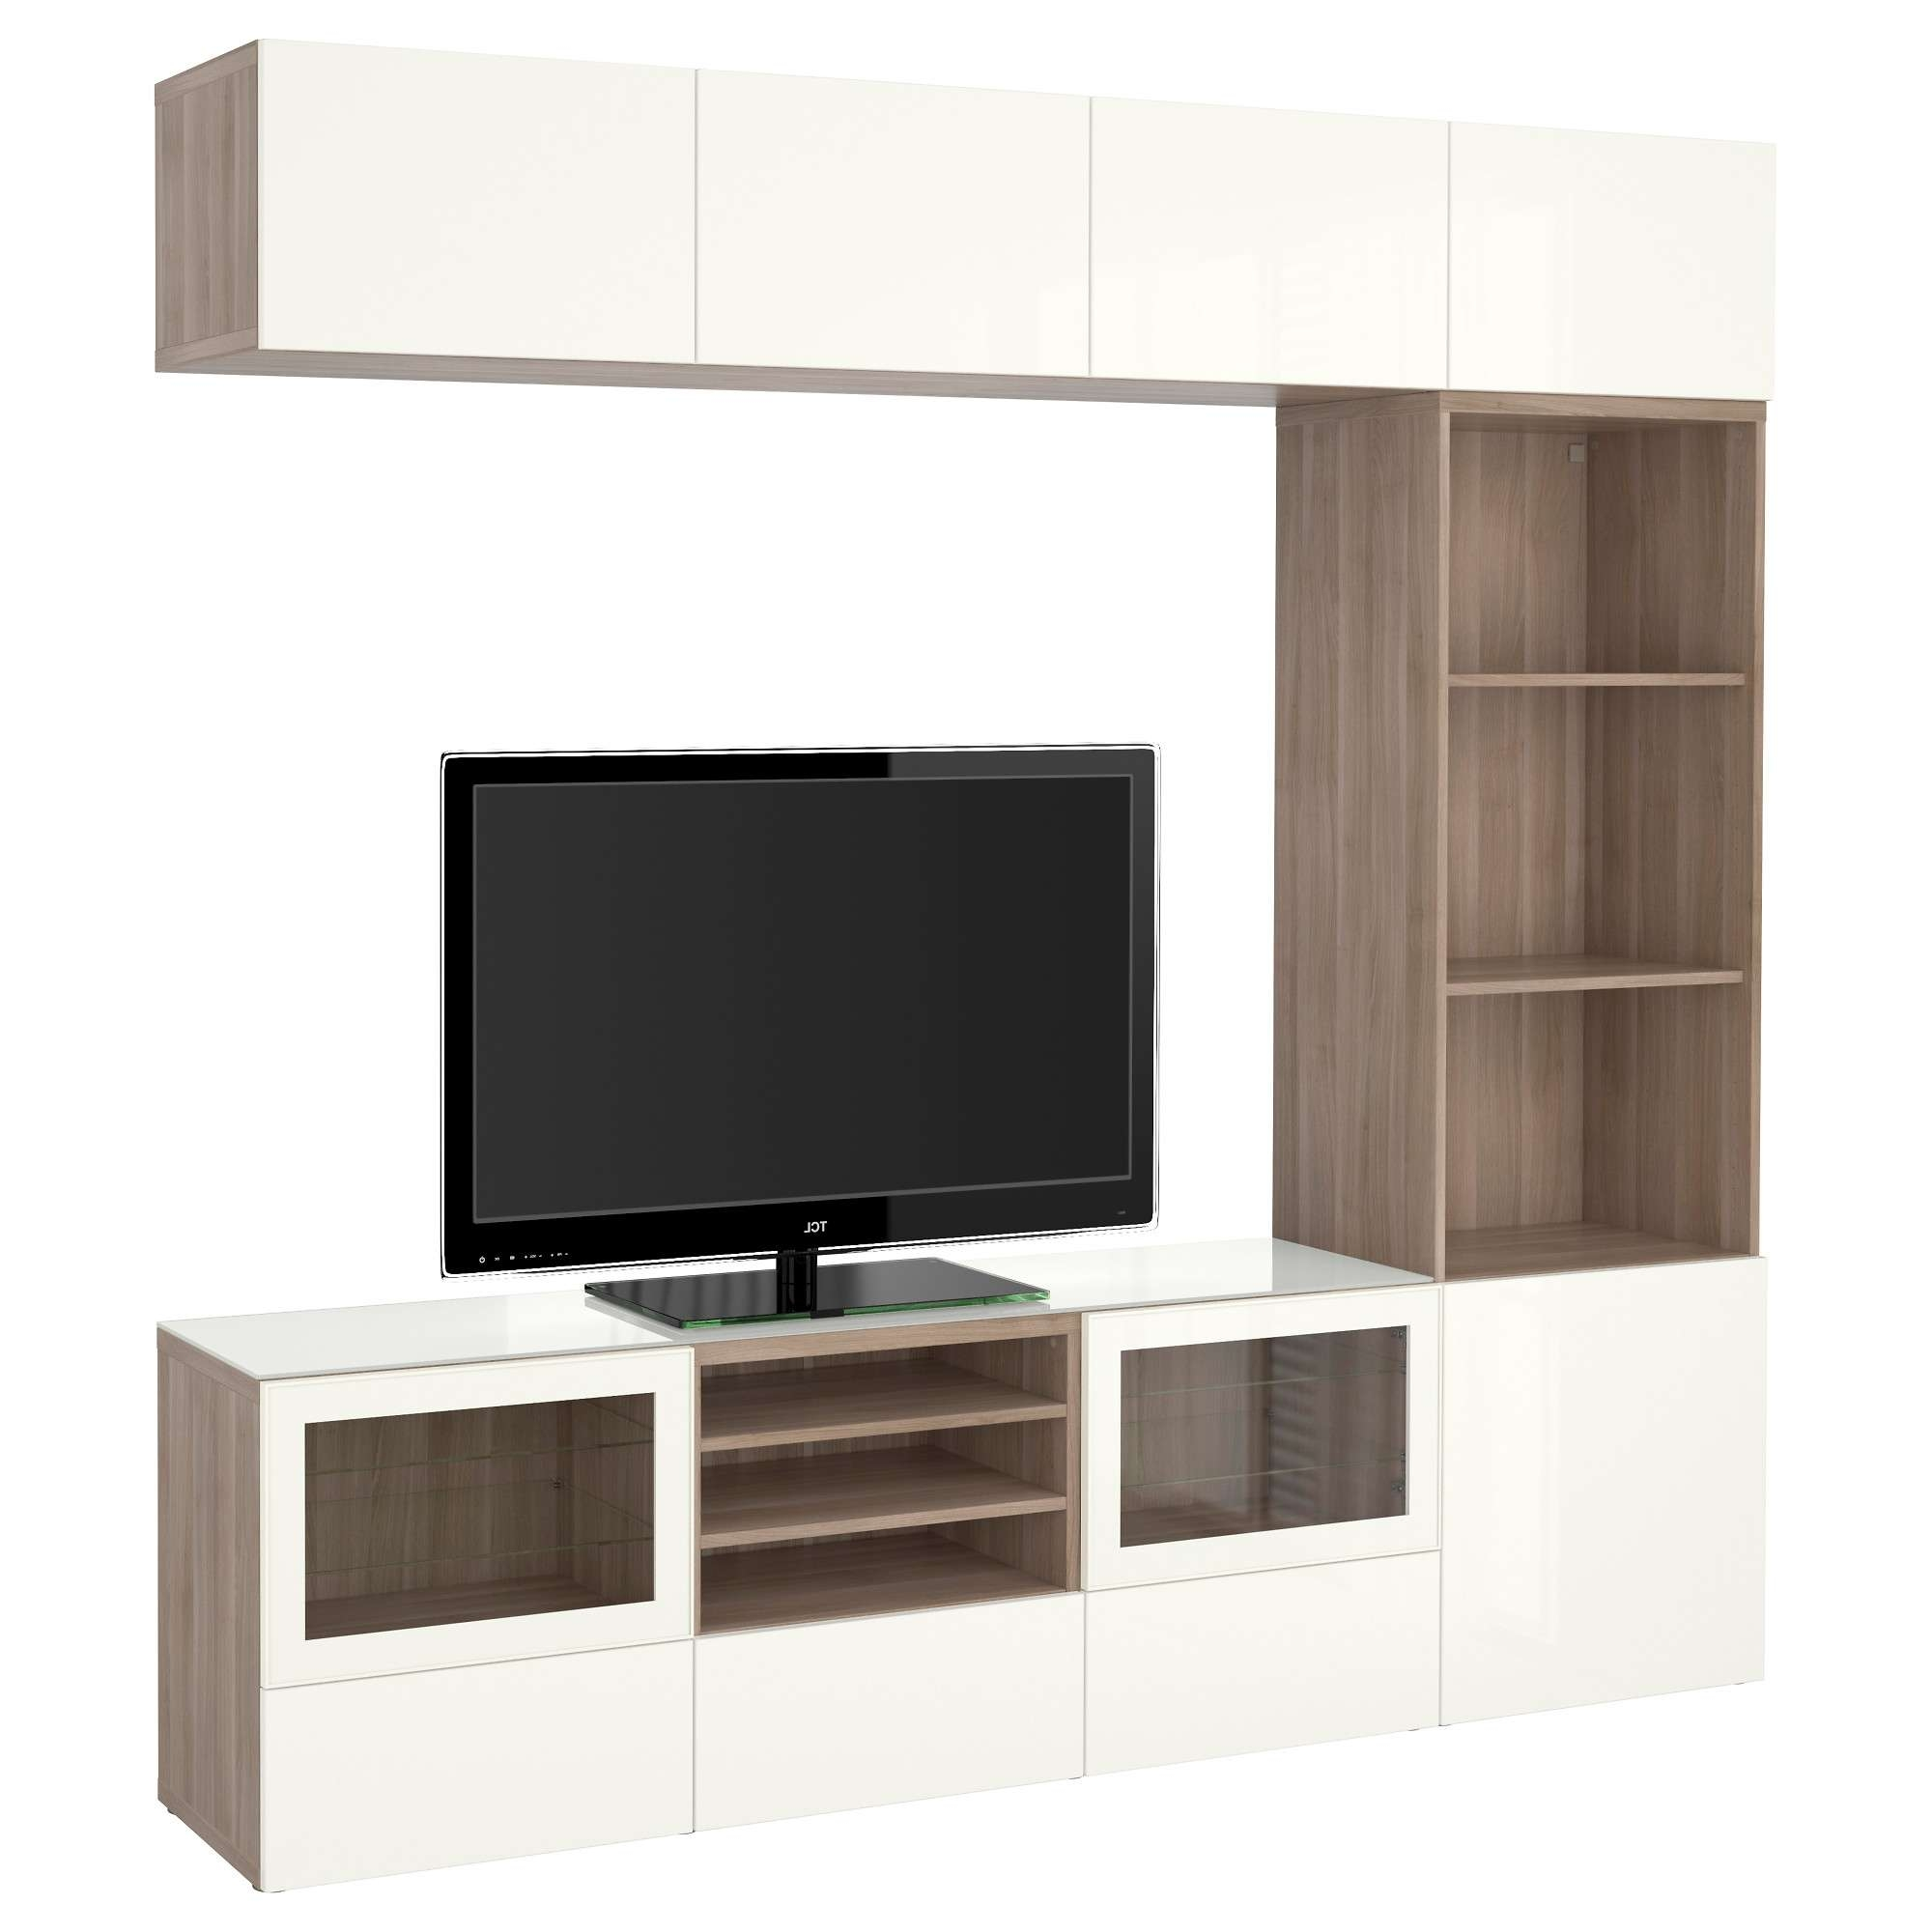 Media Cabinet With Doors Ikea Tv Storage Combinationglass Walnut Inside Oak Tv Stands With Glass Doors (View 8 of 15)